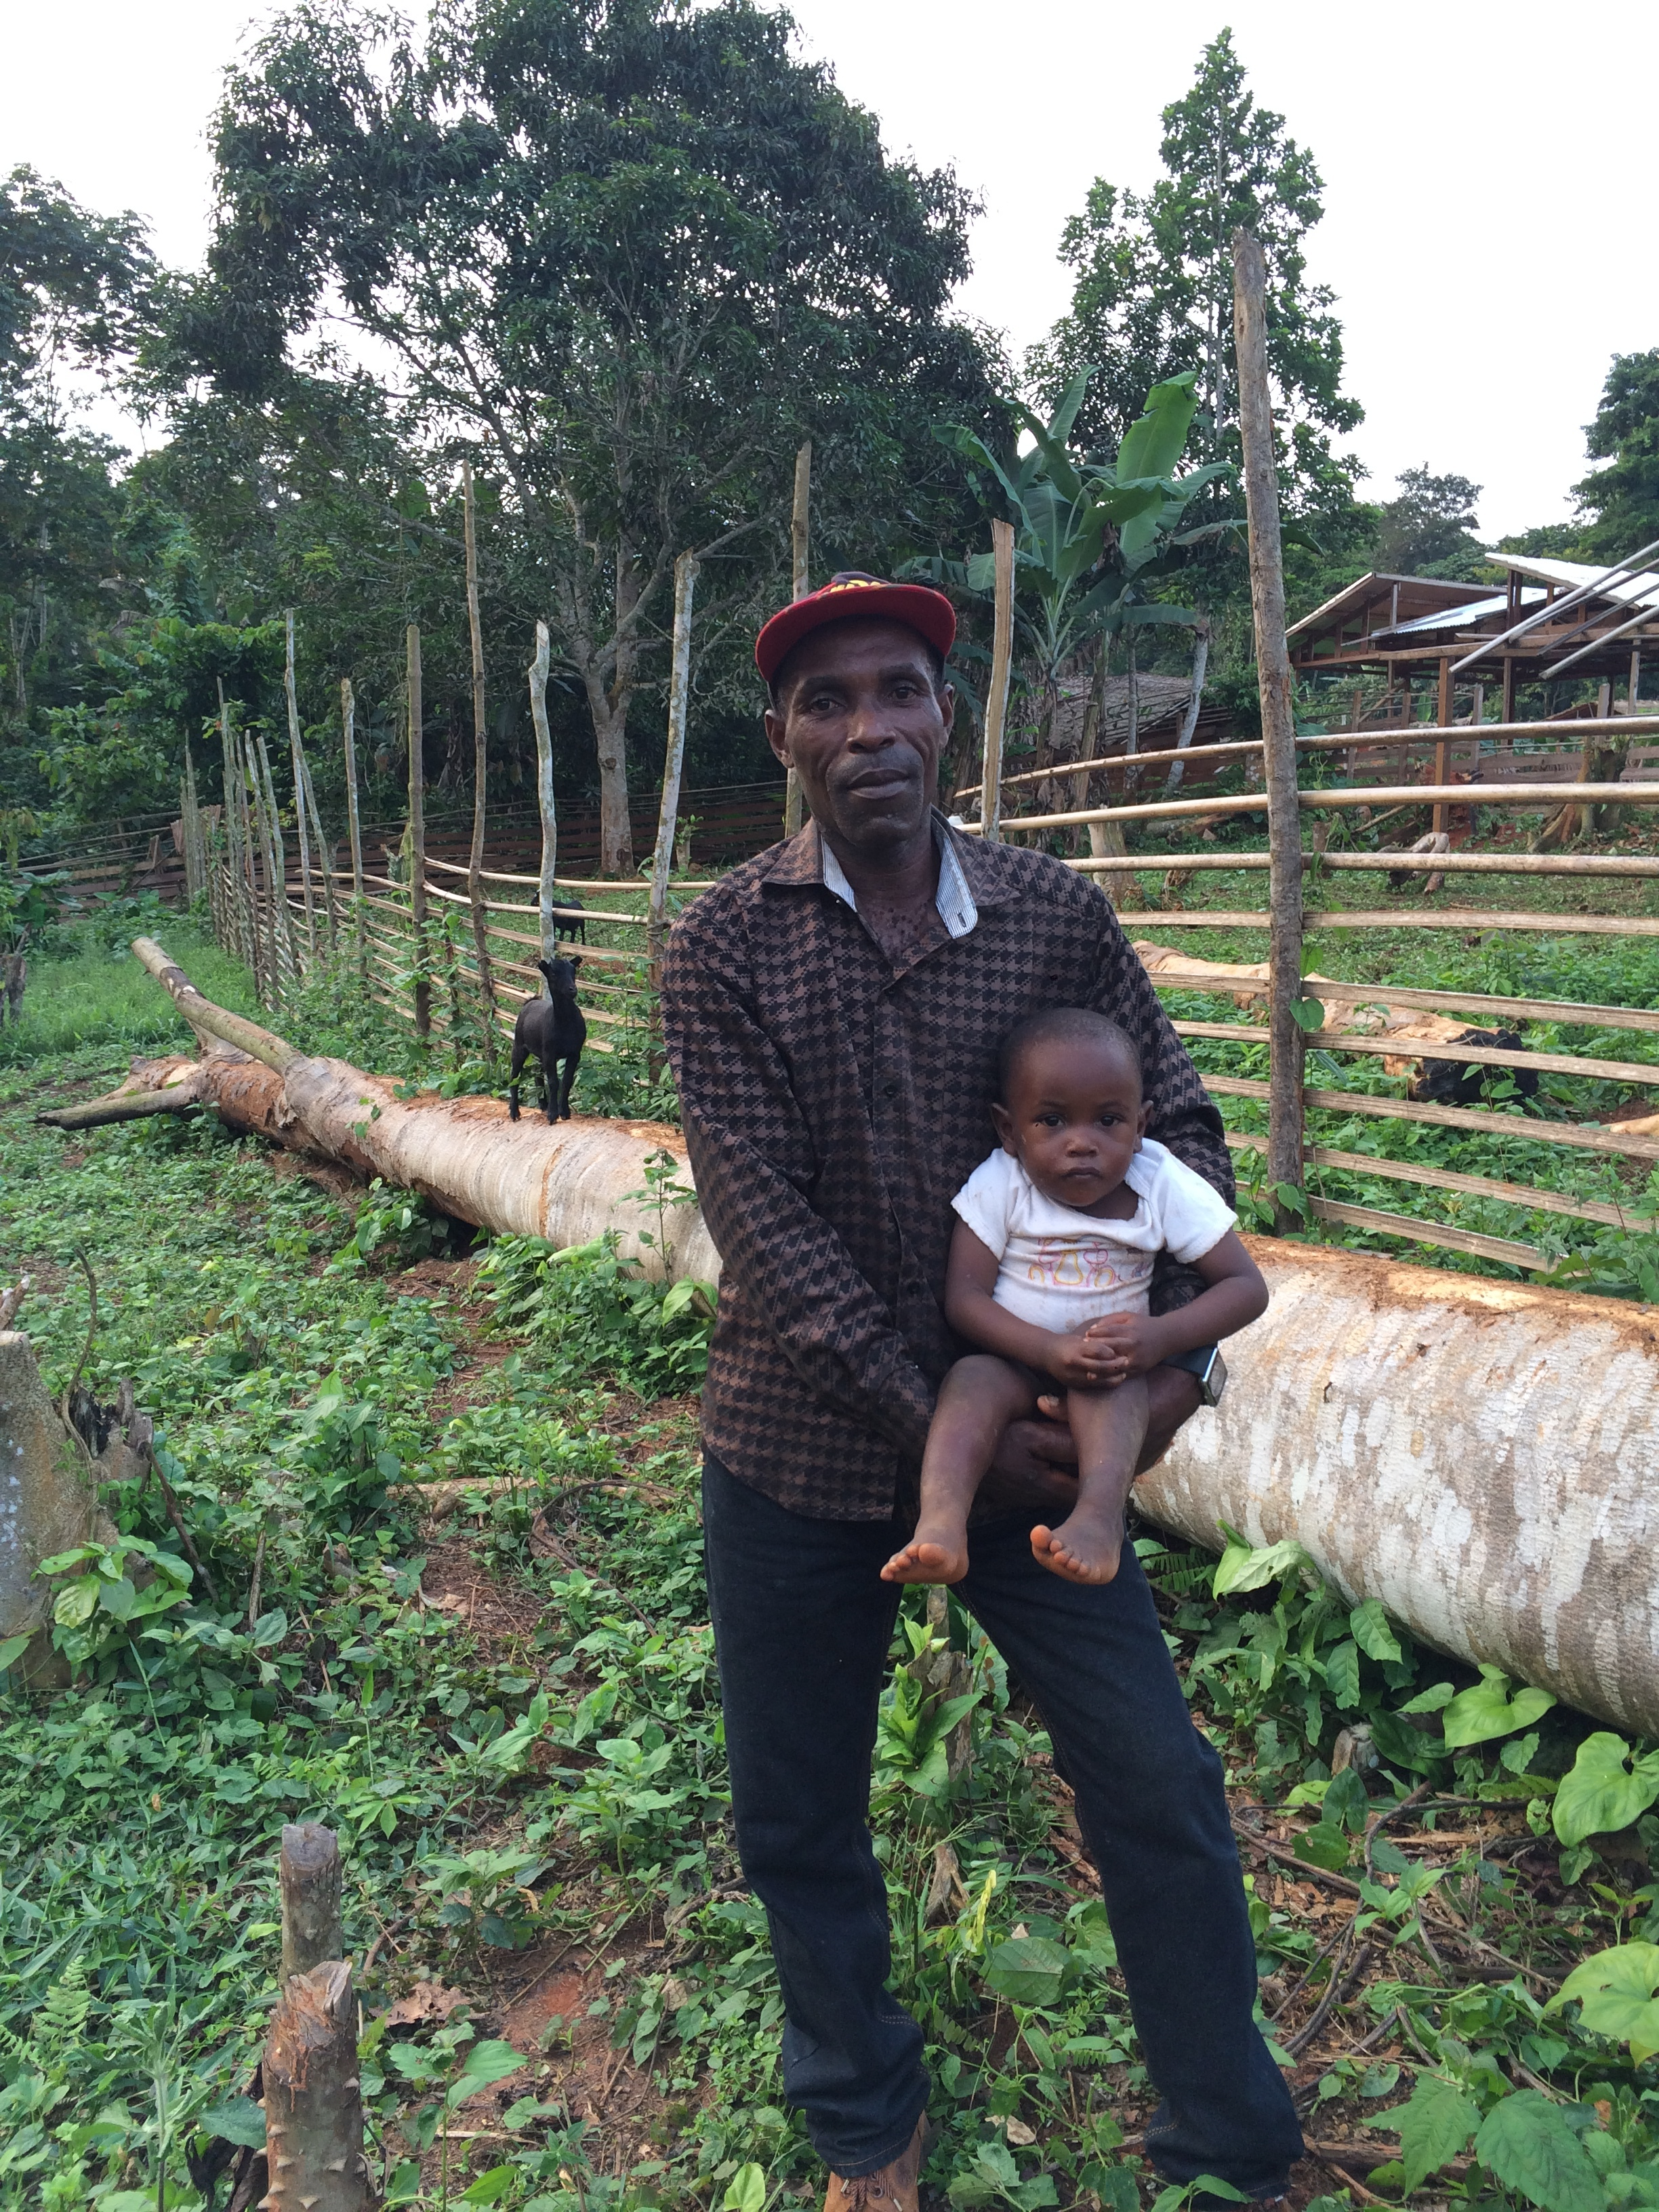 Silent Forests - Jean Paul, a former elephant poacher, now owns a cocoa farm and a small goat herd. He runs a support group for other reformed poachers in his area. He is pictured here with his youngest son.